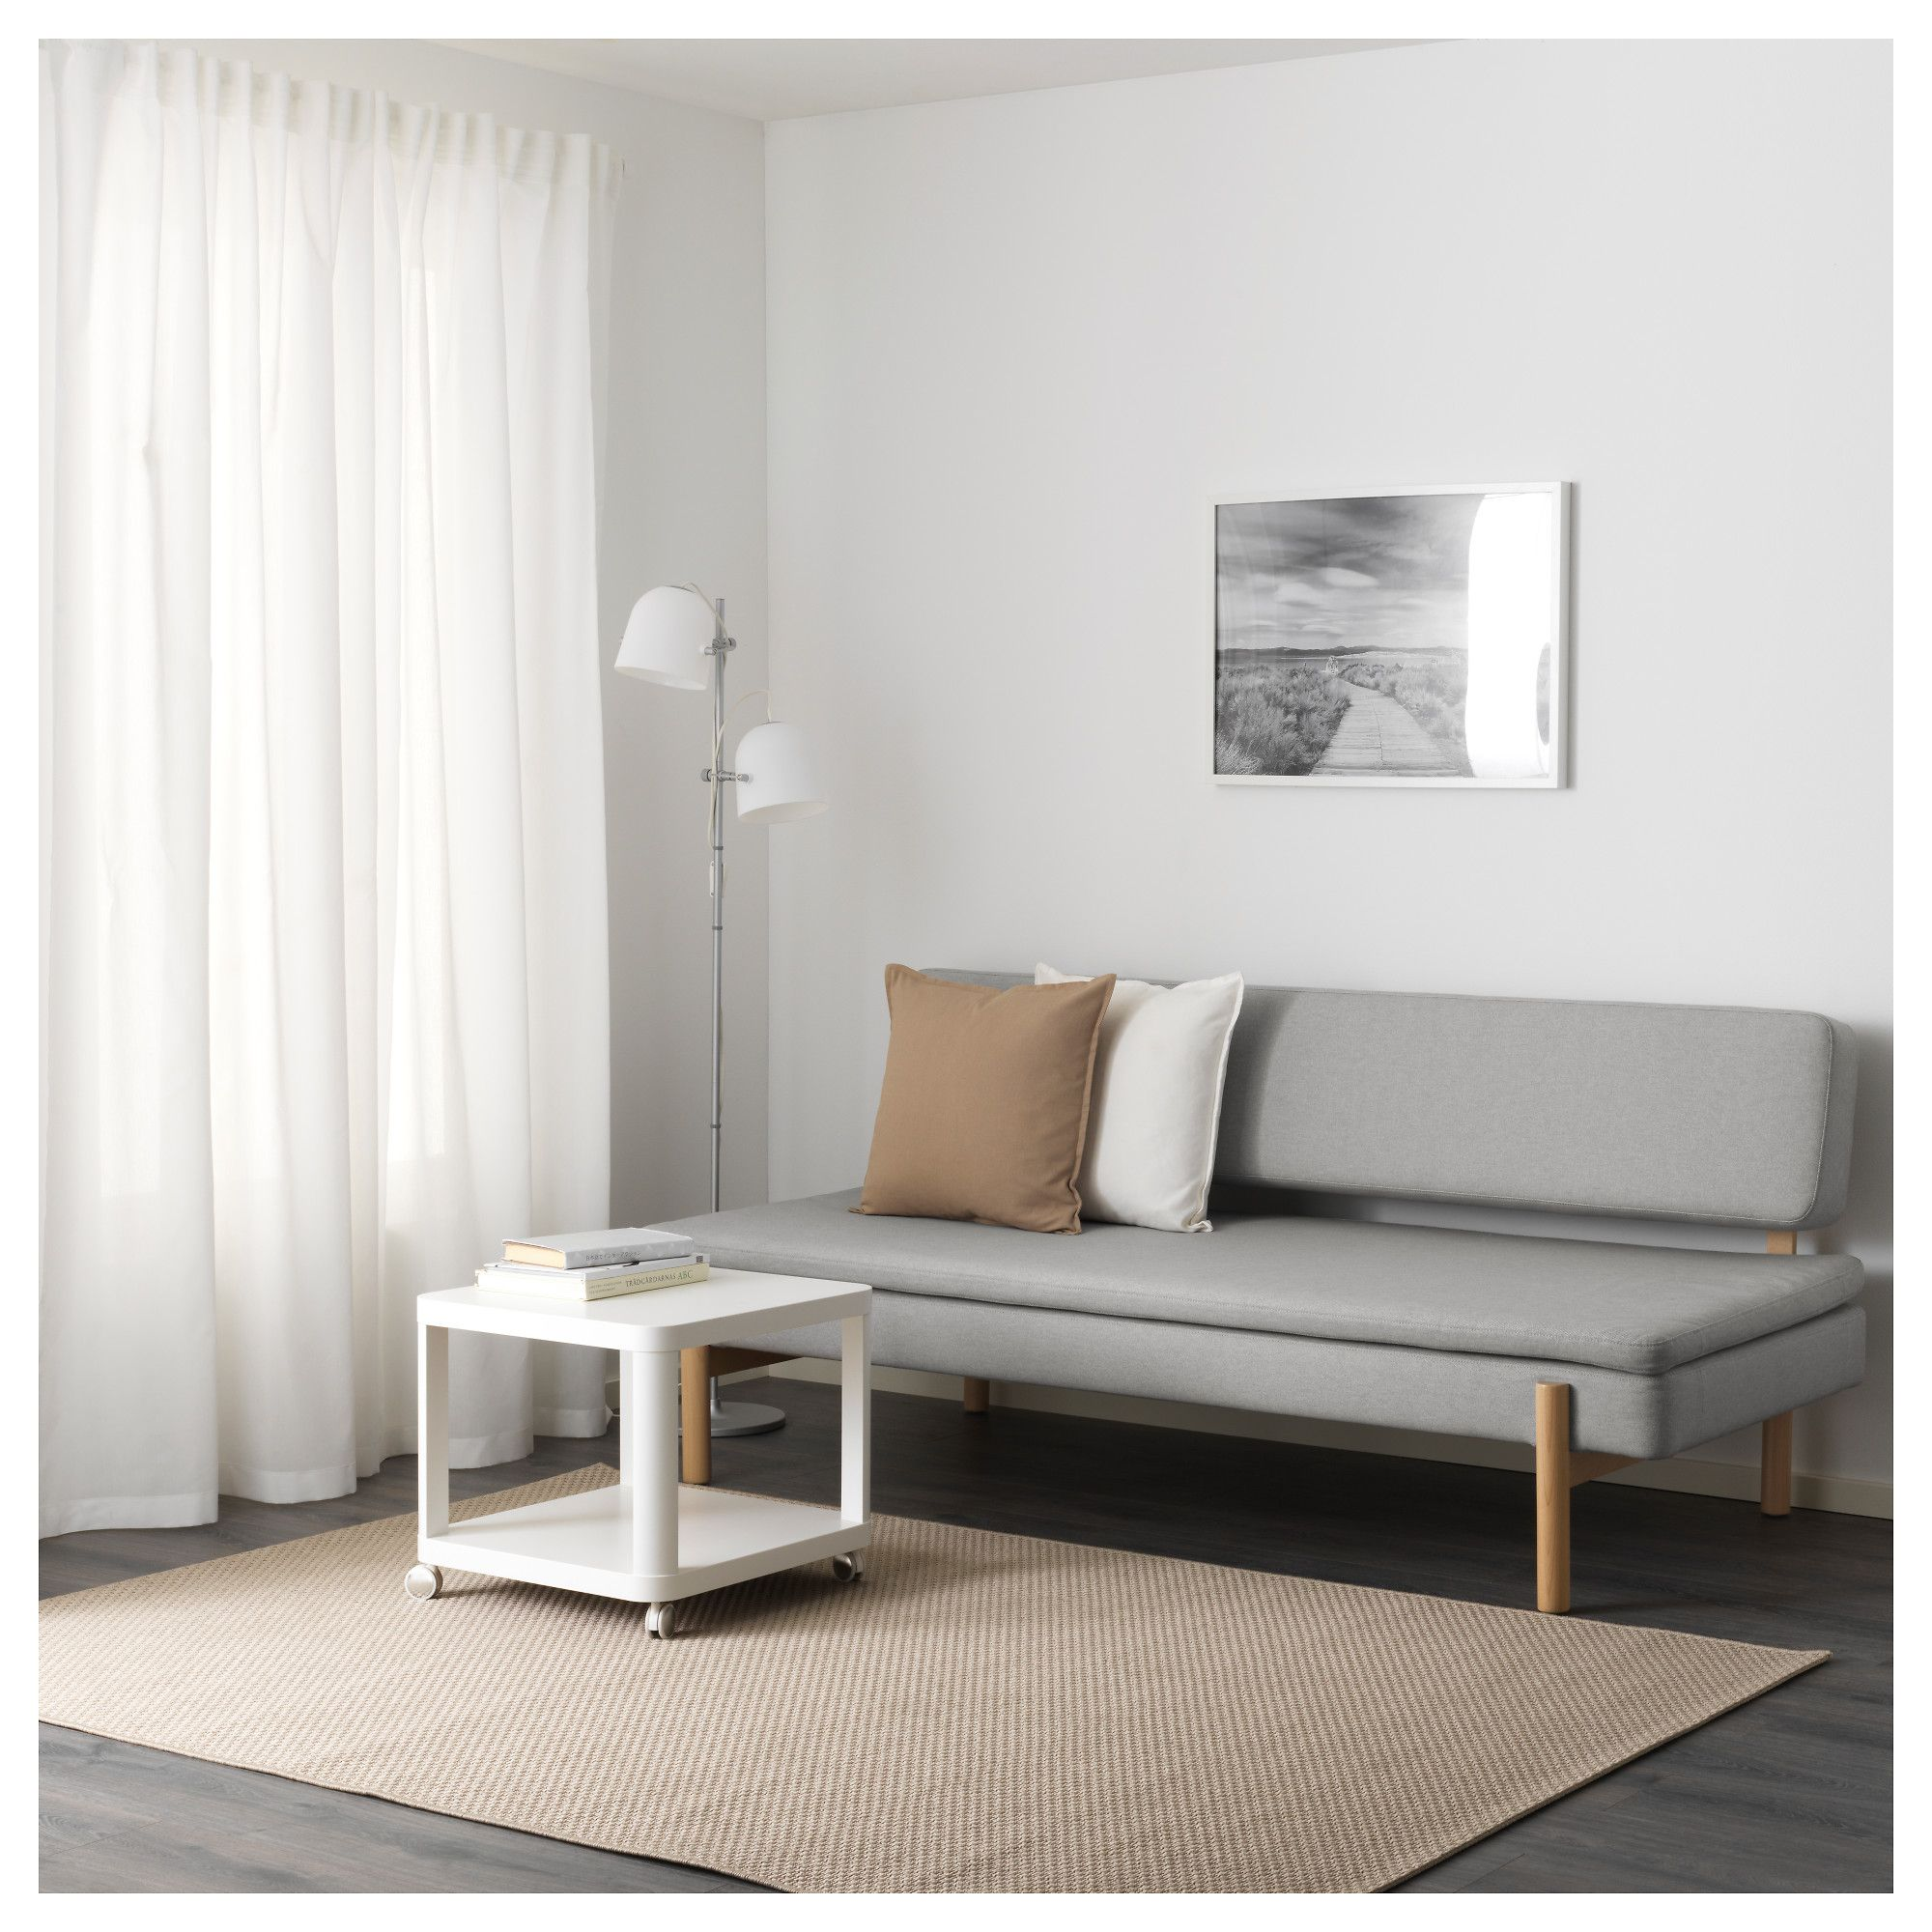 Ikea Sofa Japan Ikea Ypperlig 3 Seat Sleeper Sofa Orrsta Light Gray In